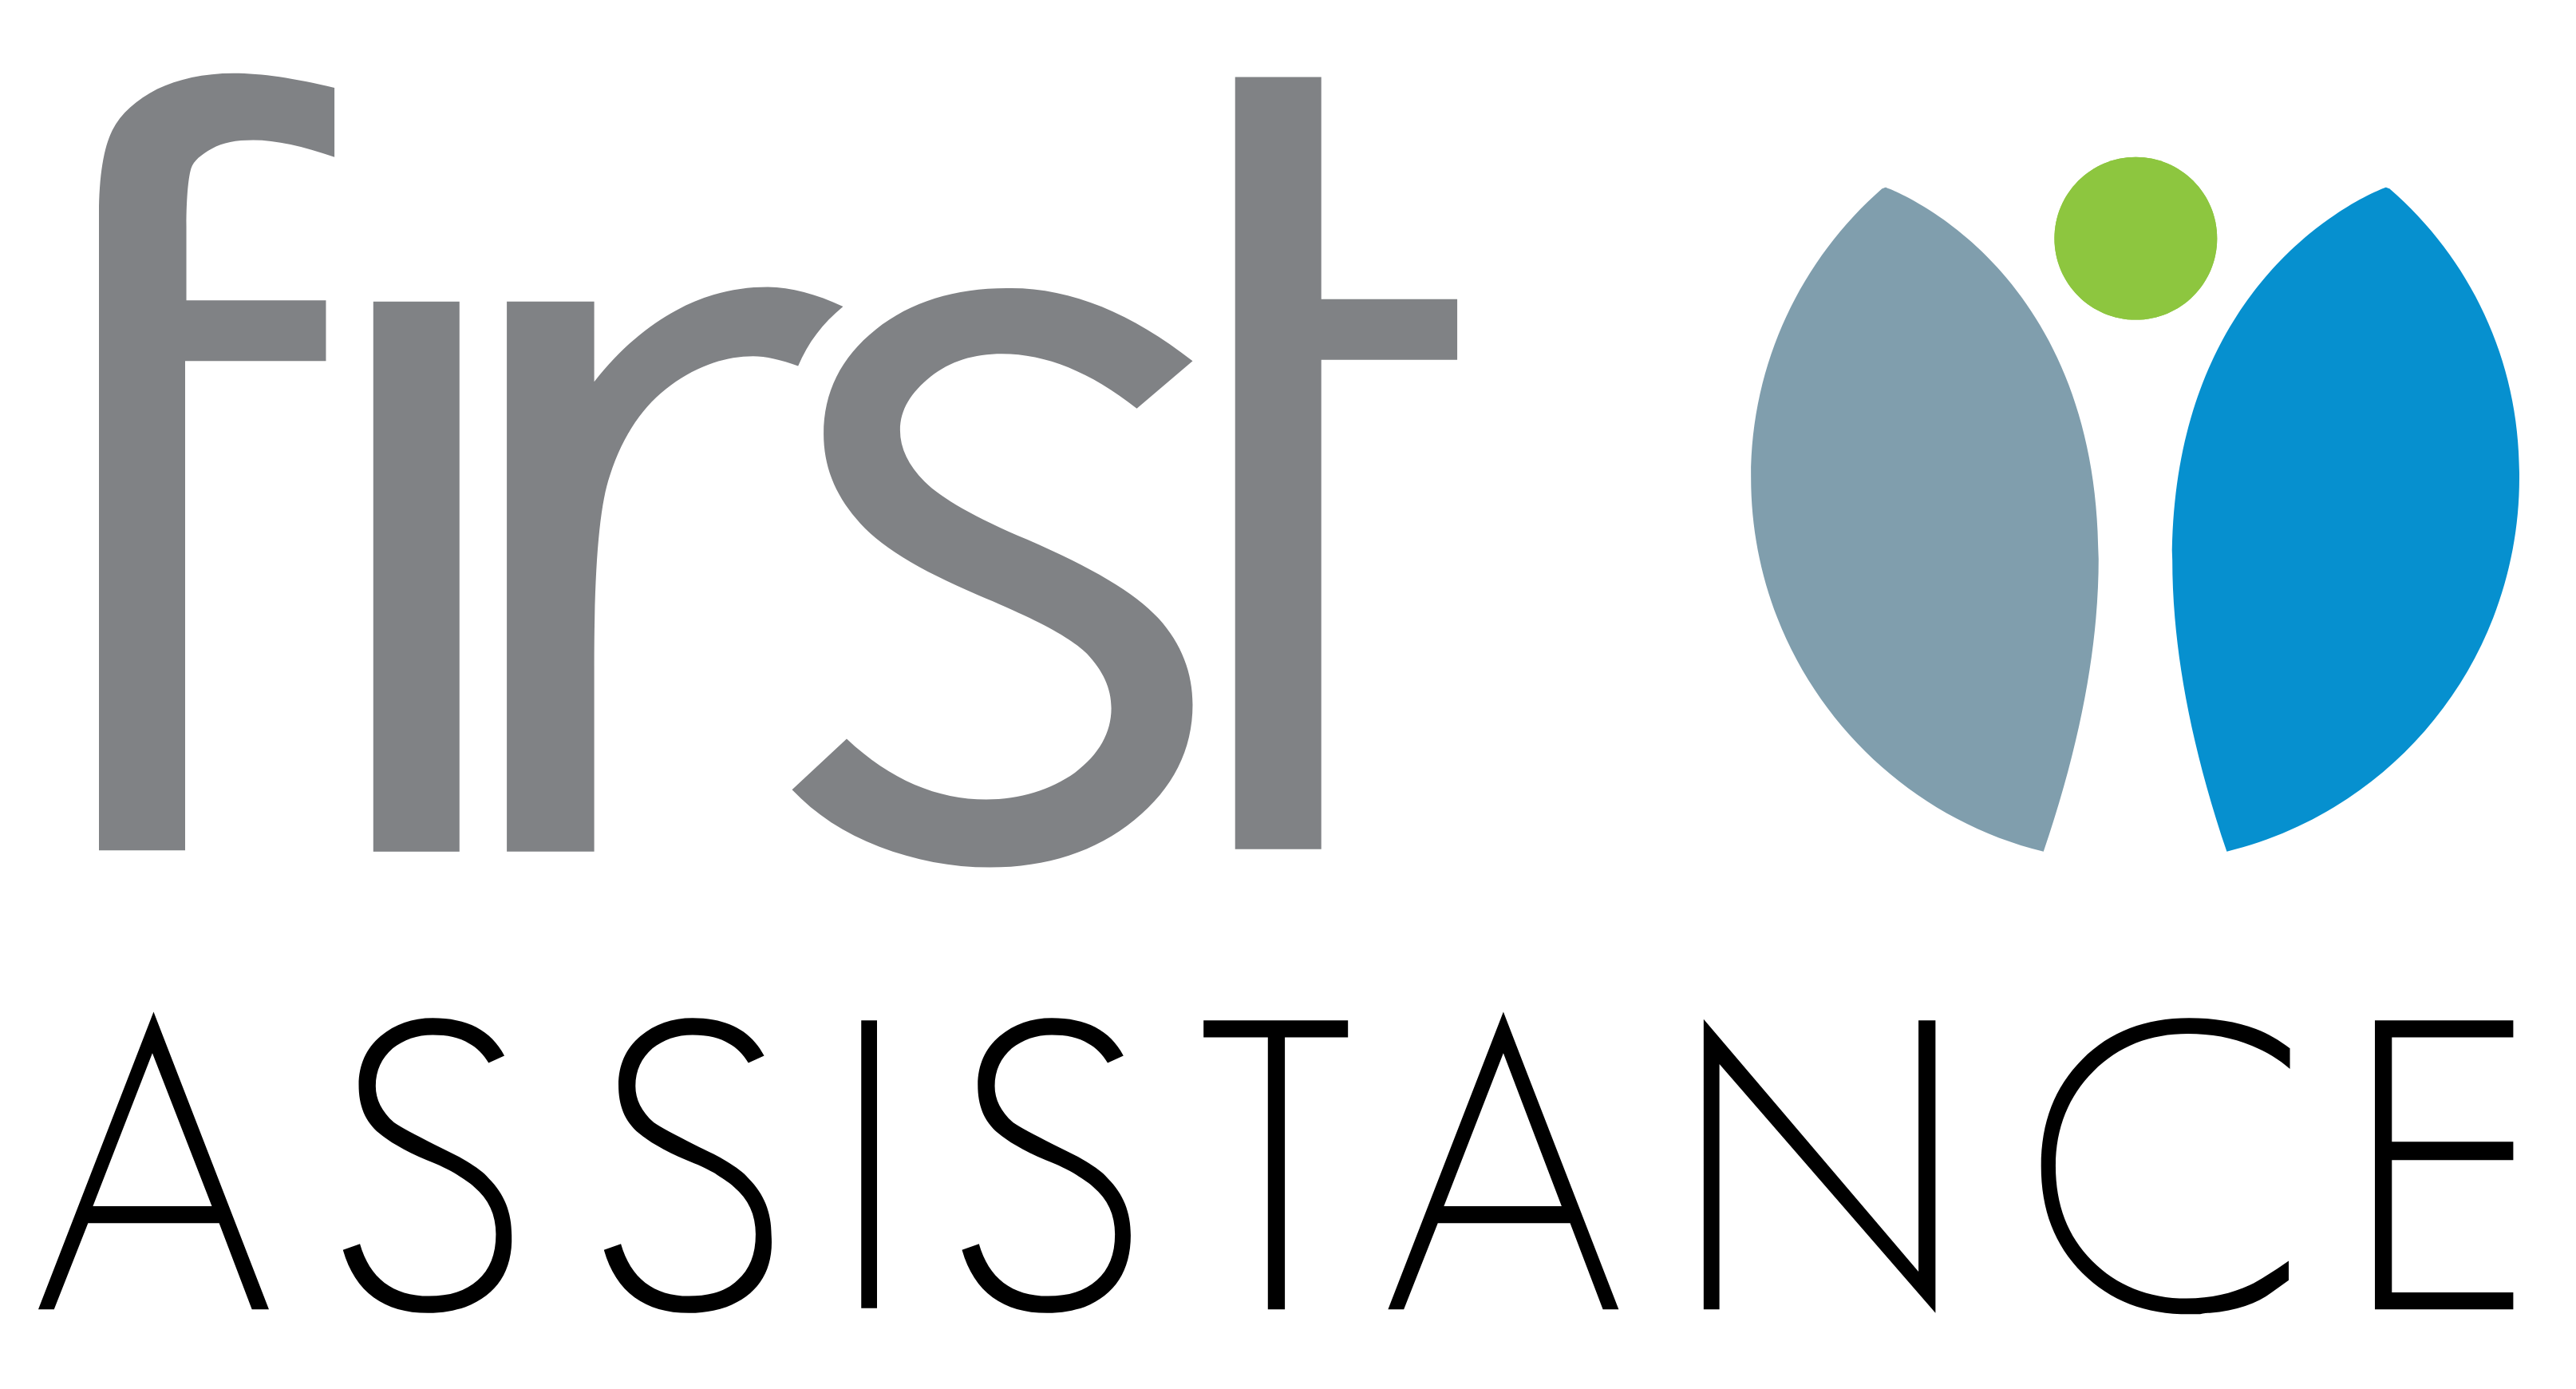 First Assistance - Partner to Need a Tow vehicle towing services